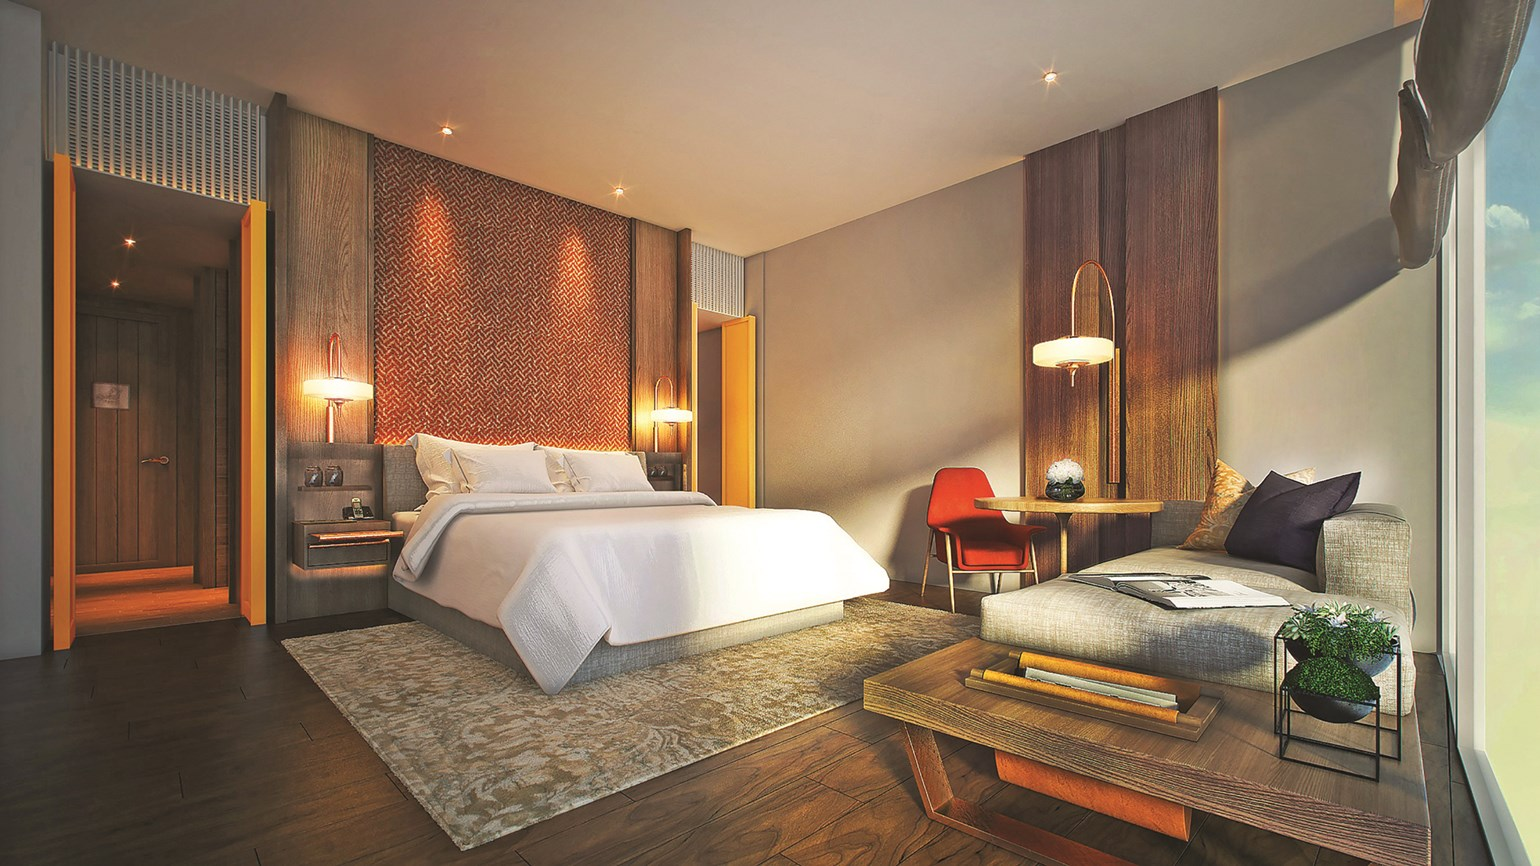 Andaz hotel opens in Singapore